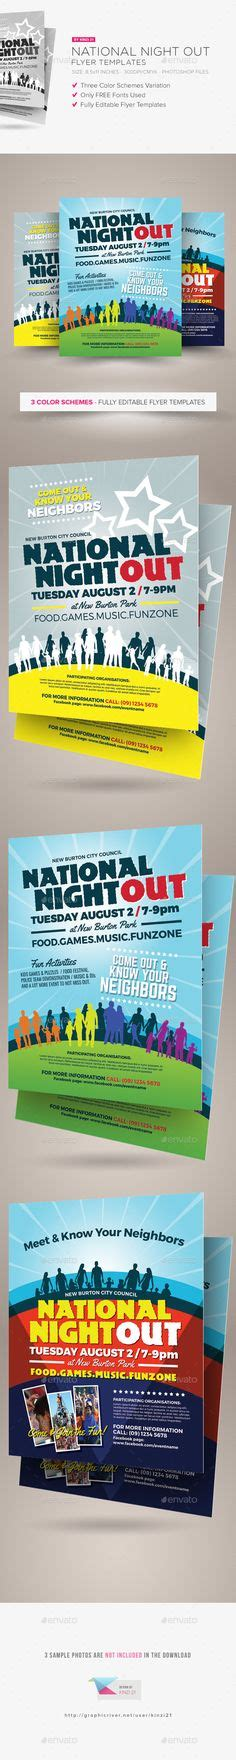 national out flyer template a bouncy house is one way to make your national out memorable for more nno